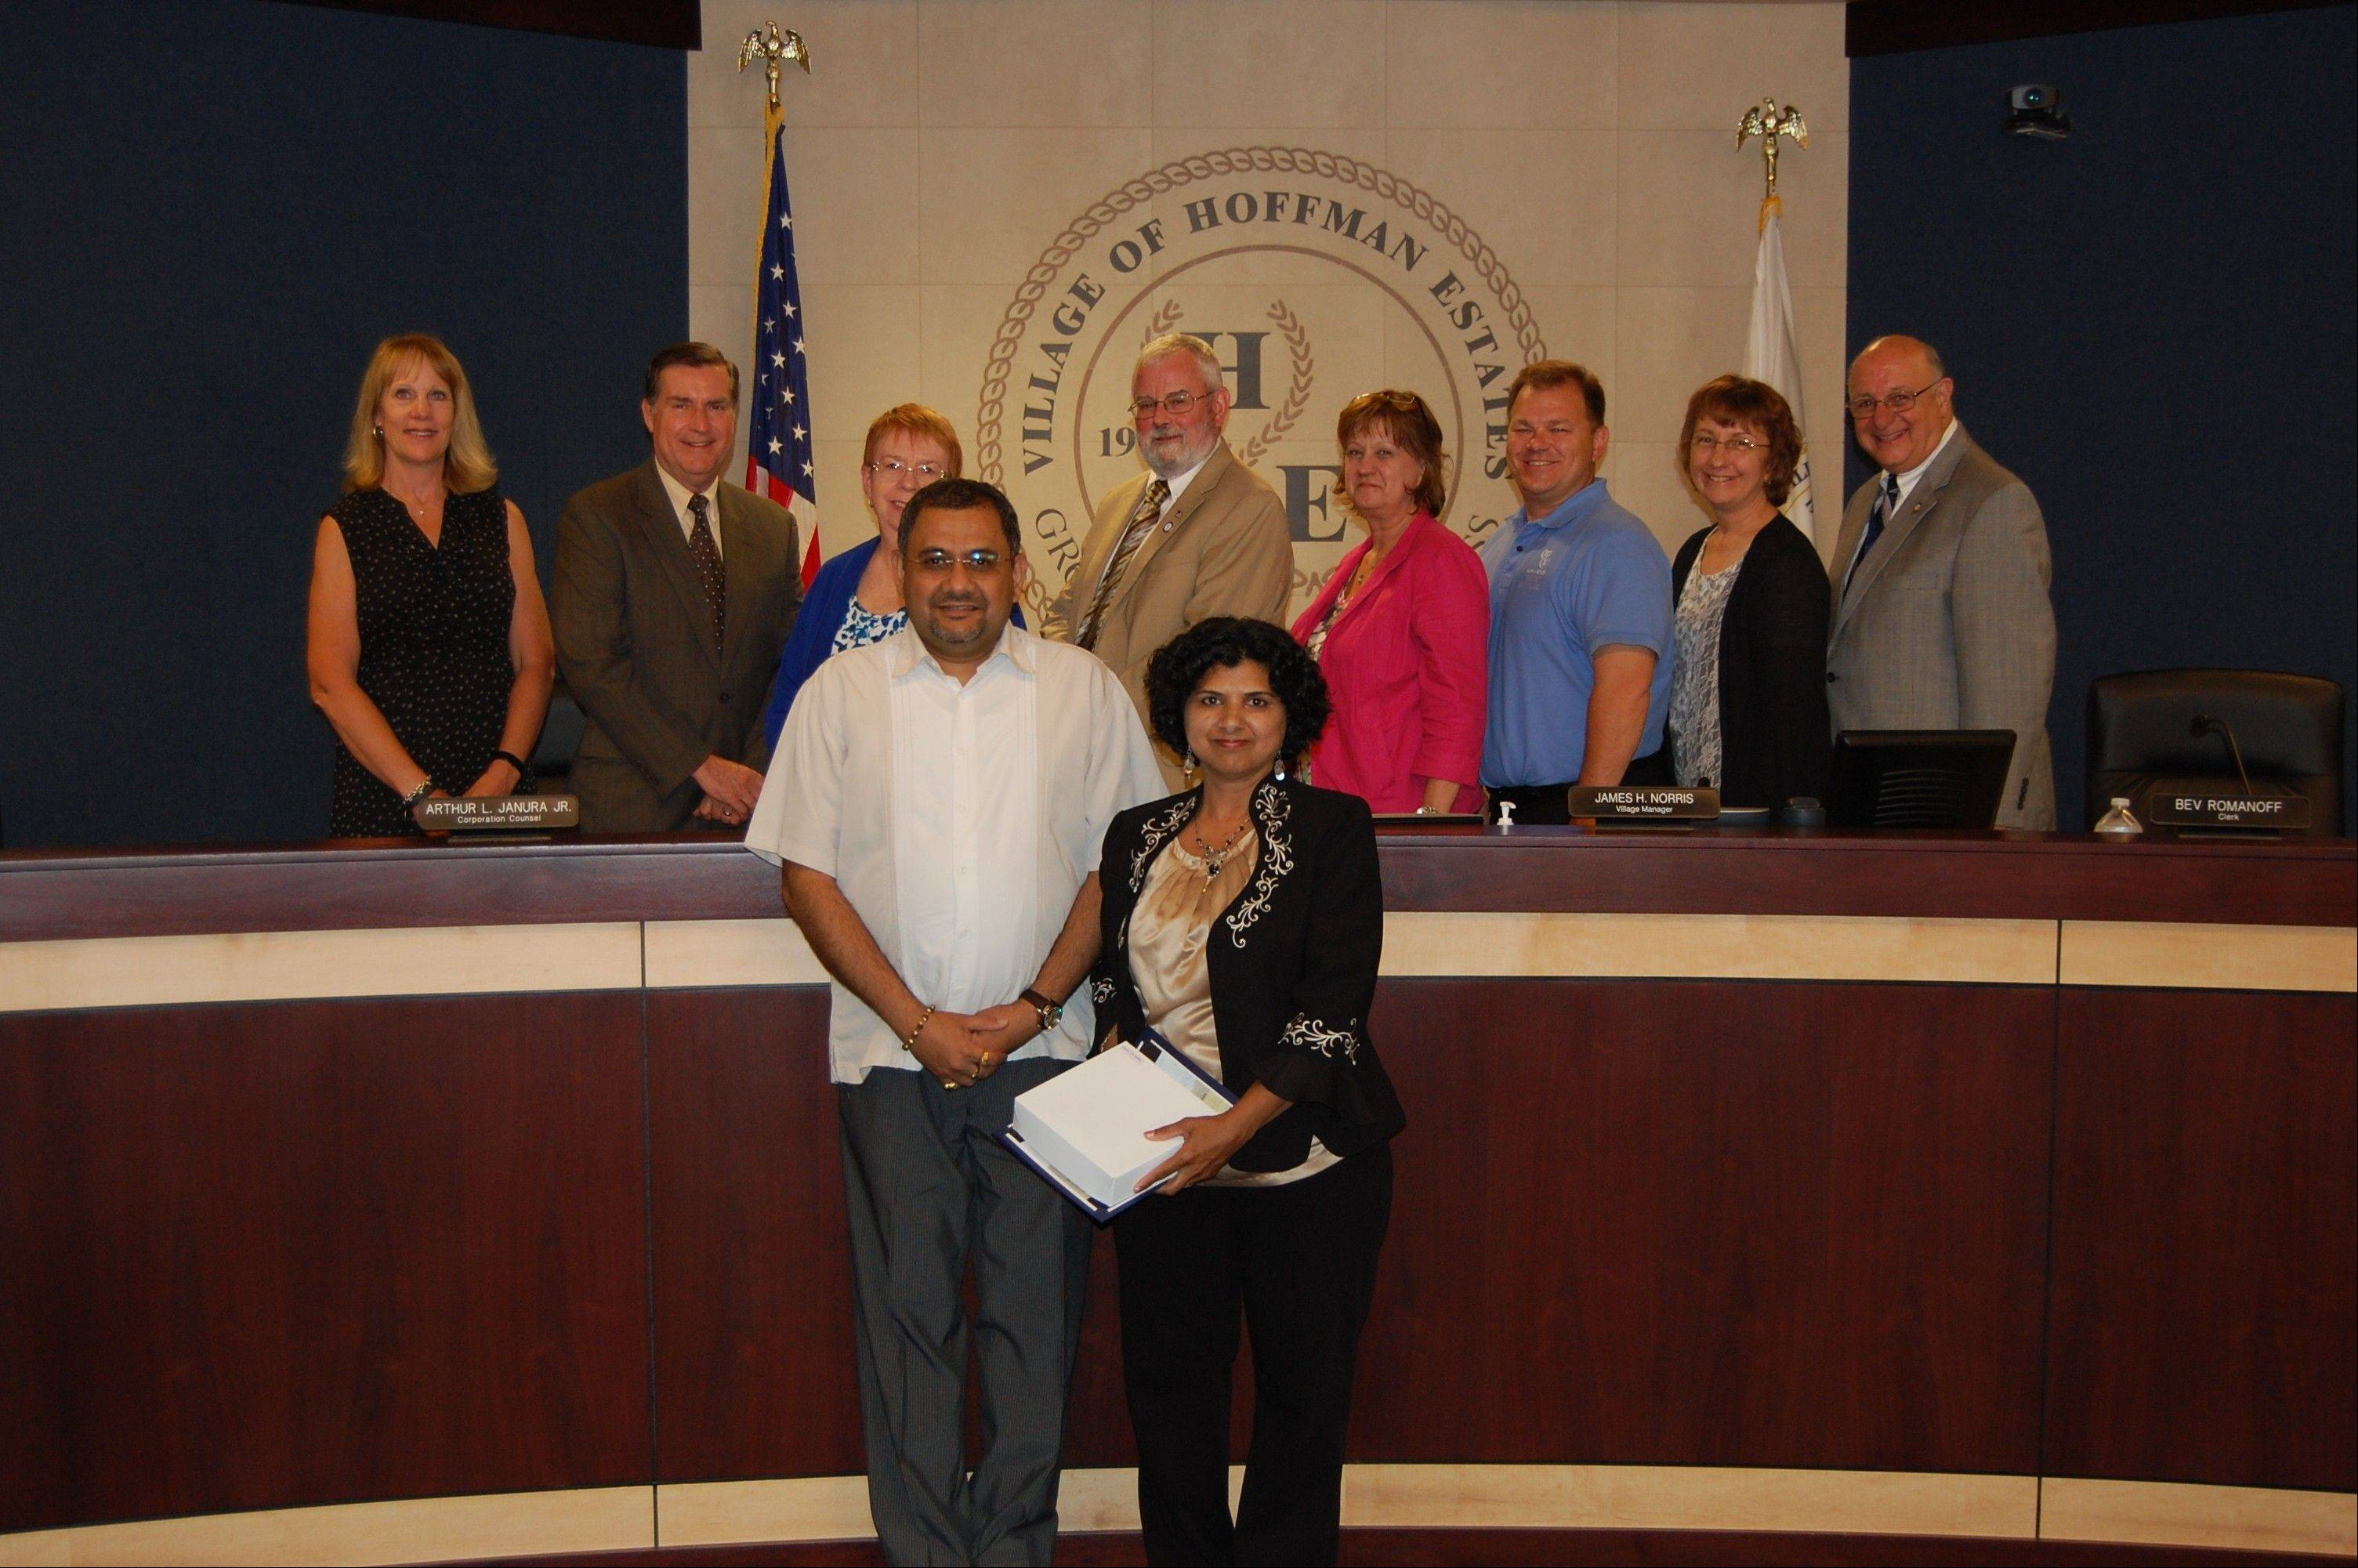 Niketa Dave, a 2013 recipient of the Barb Basl Award, with the Hoffman Estates village board.